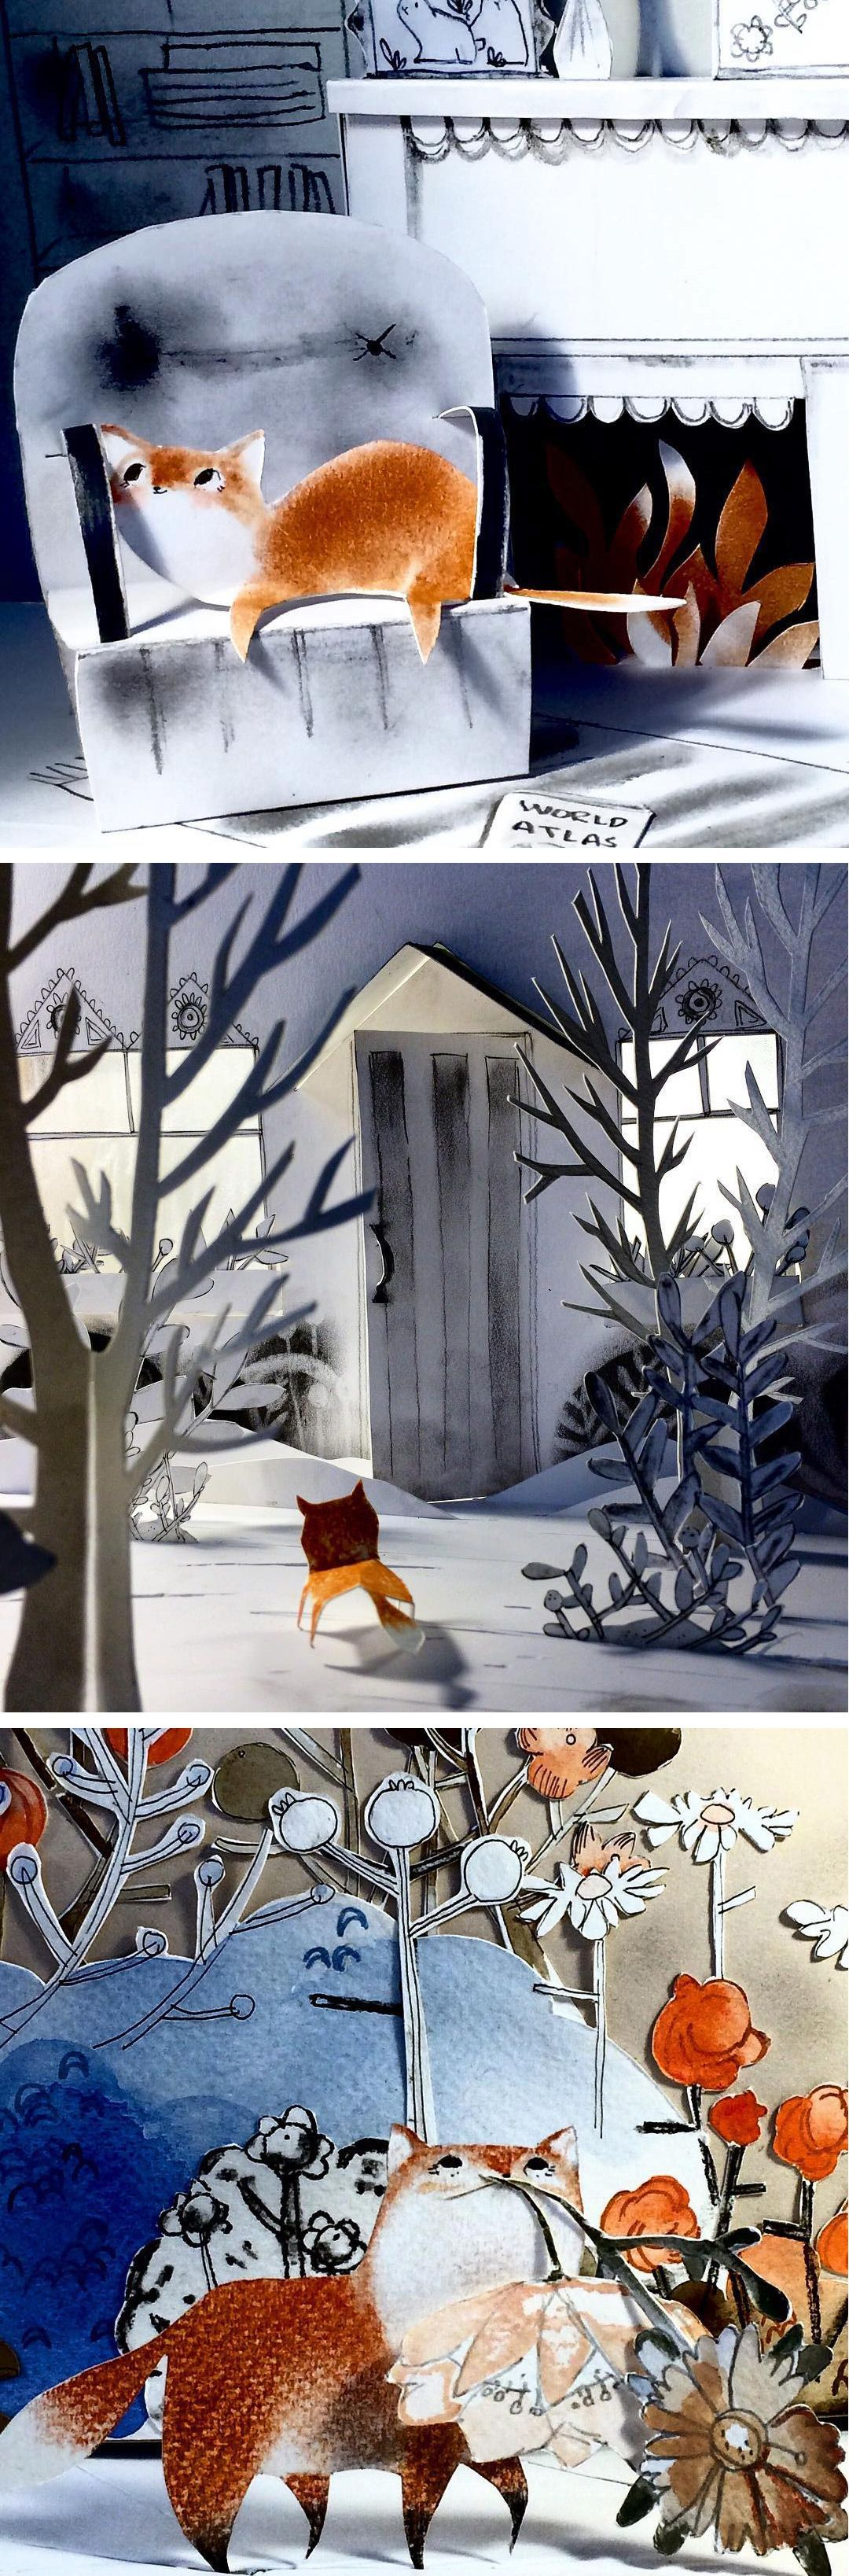 Cut Paper Dioramas Chronicle the Storybook Adventures of a Fox